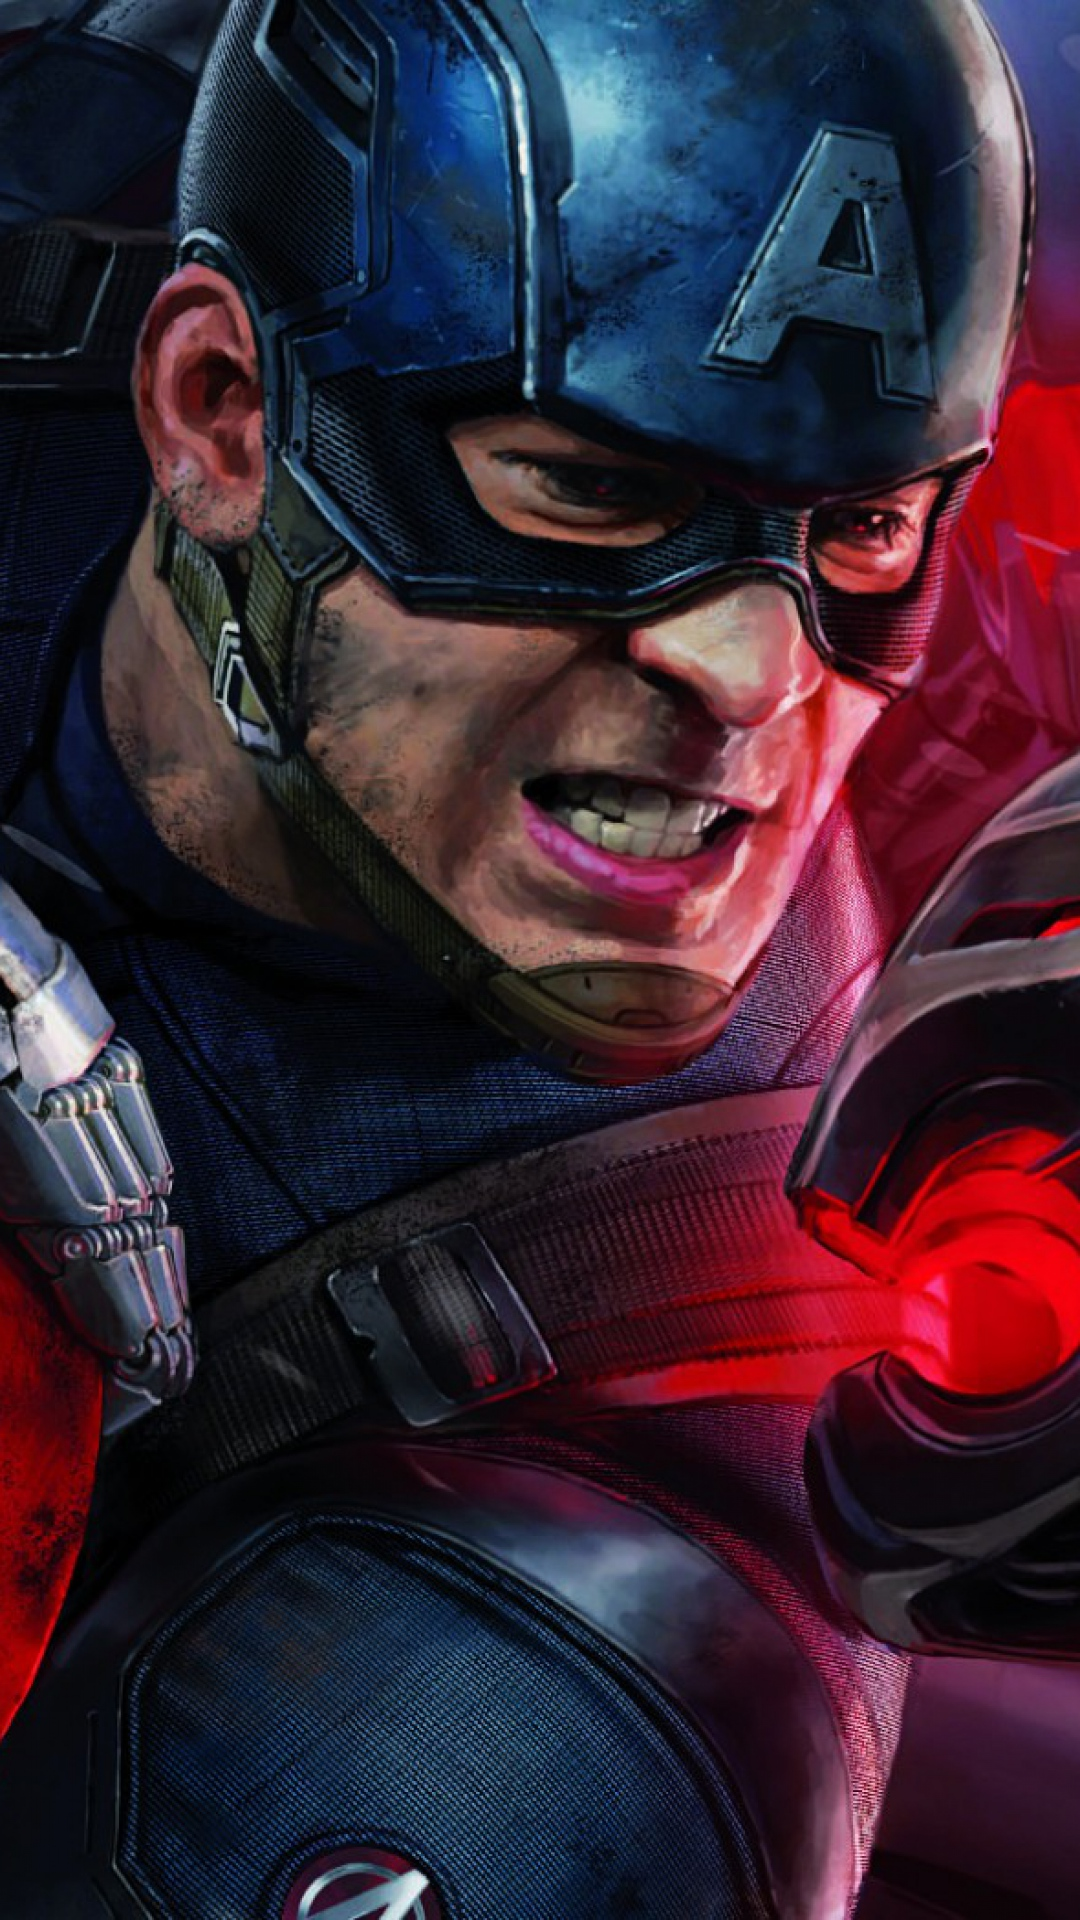 Captain America Hd Wallpaper For Android (#3102136) - HD ...